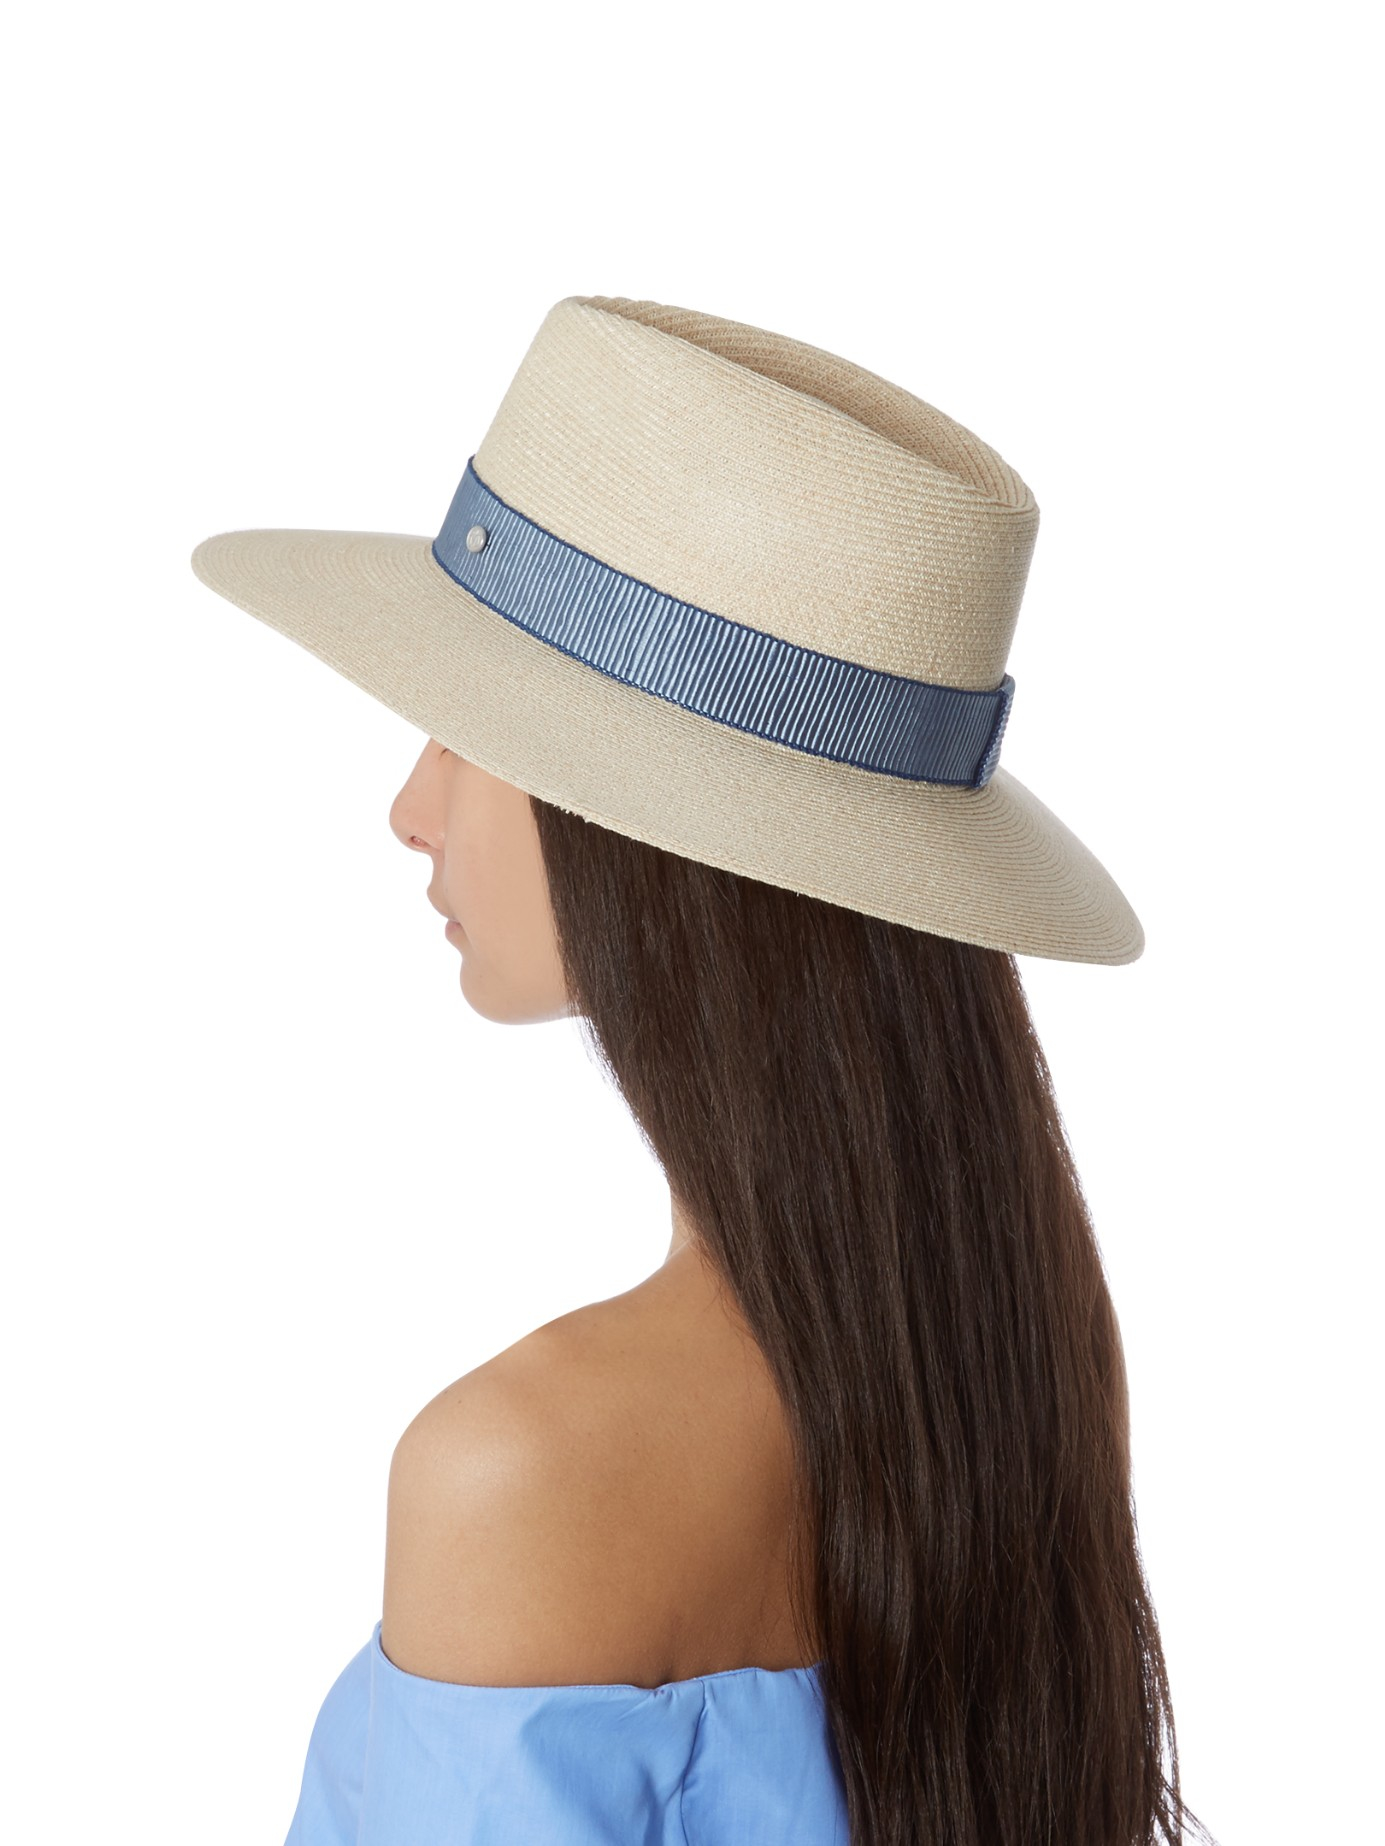 Lyst - Maison Michel Charles Capana Straw Hat in Blue d1e2a7e7ee7